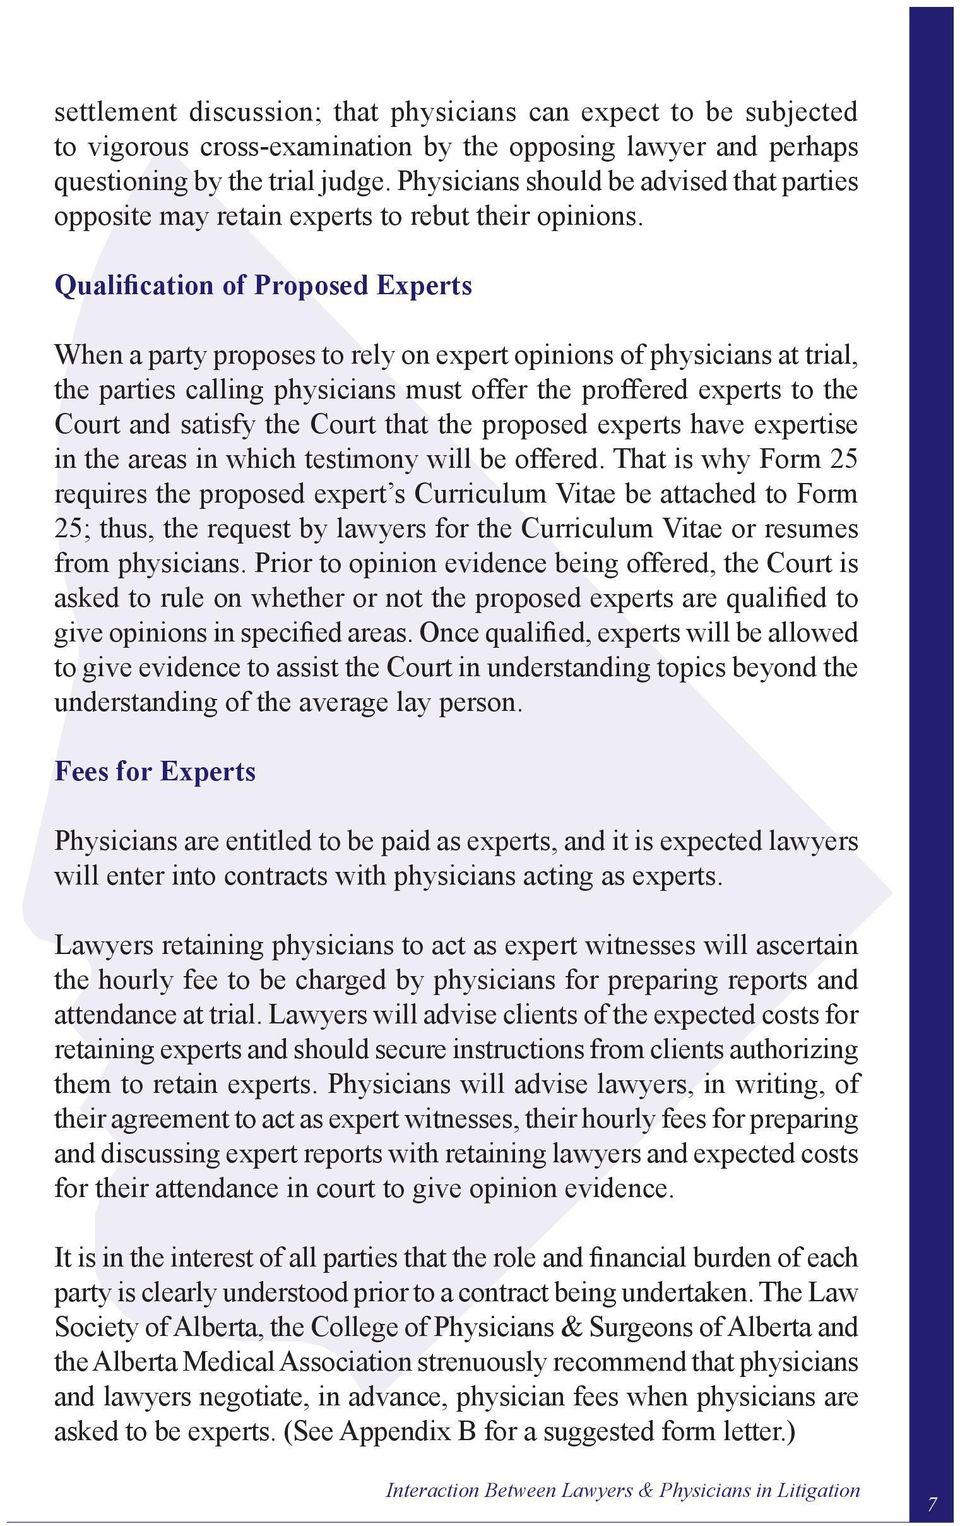 Qualification of Proposed Experts When a party proposes to rely on expert opinions of physicians at trial, the parties calling physicians must offer the proffered experts to the Court and satisfy the